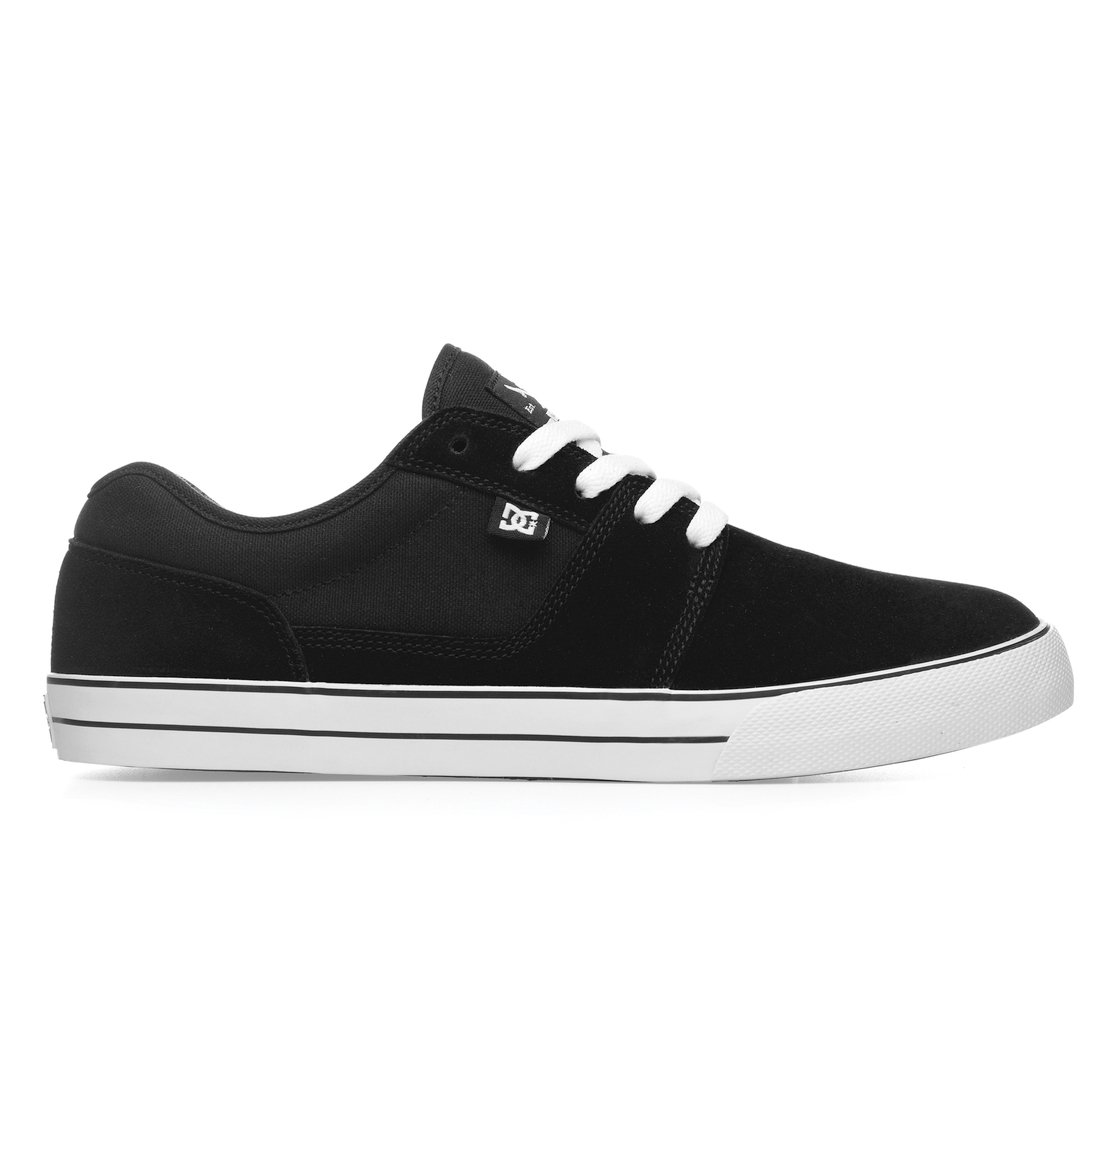 dcshoes, , BLACK/WHITE (bkw